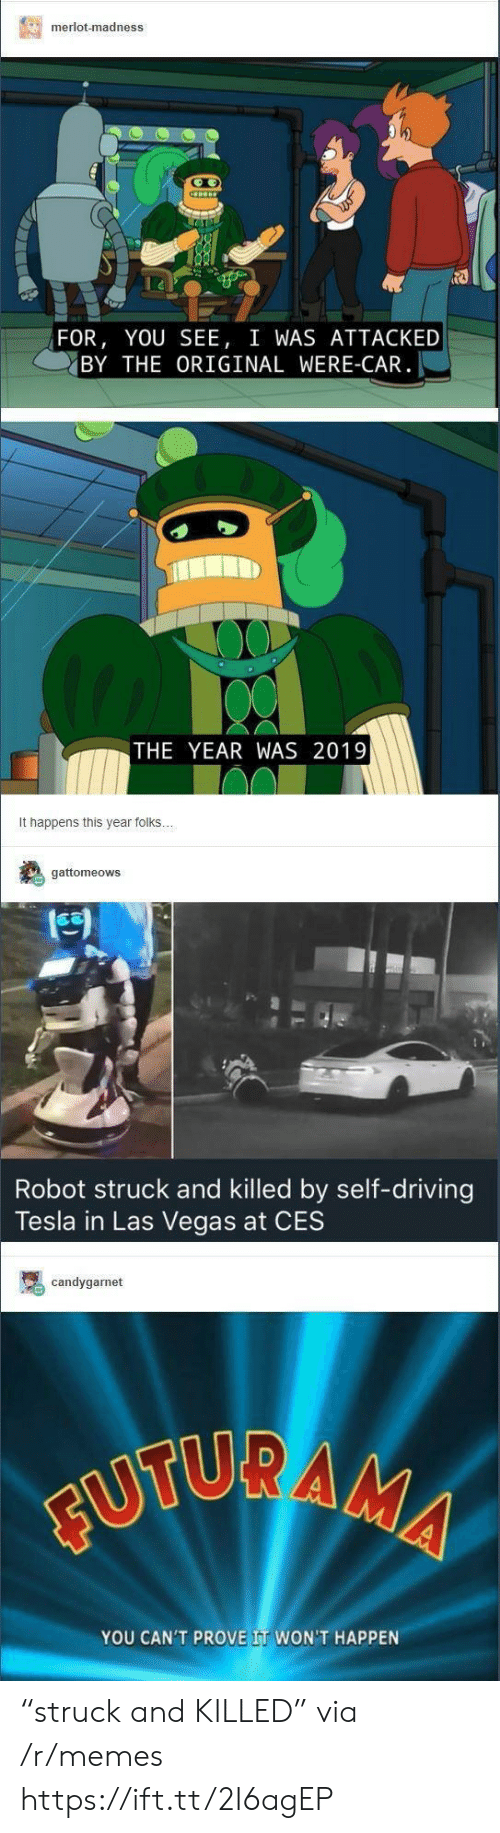 "Driving, Memes, and Las Vegas: merlot-madness  FOR, YOU SEE, I WAS ATTACKED  BY THE ORIGINAL WERE-CAR  THE YEAR WAS 2019  It happens this year folks  gattomeows  Robot struck and killed by self-driving  Tesla in Las Vegas at CES  candygarnet  YOU CAN'T PROVE IT WON'T HAPPEN ""struck and KILLED"" via /r/memes https://ift.tt/2I6agEP"